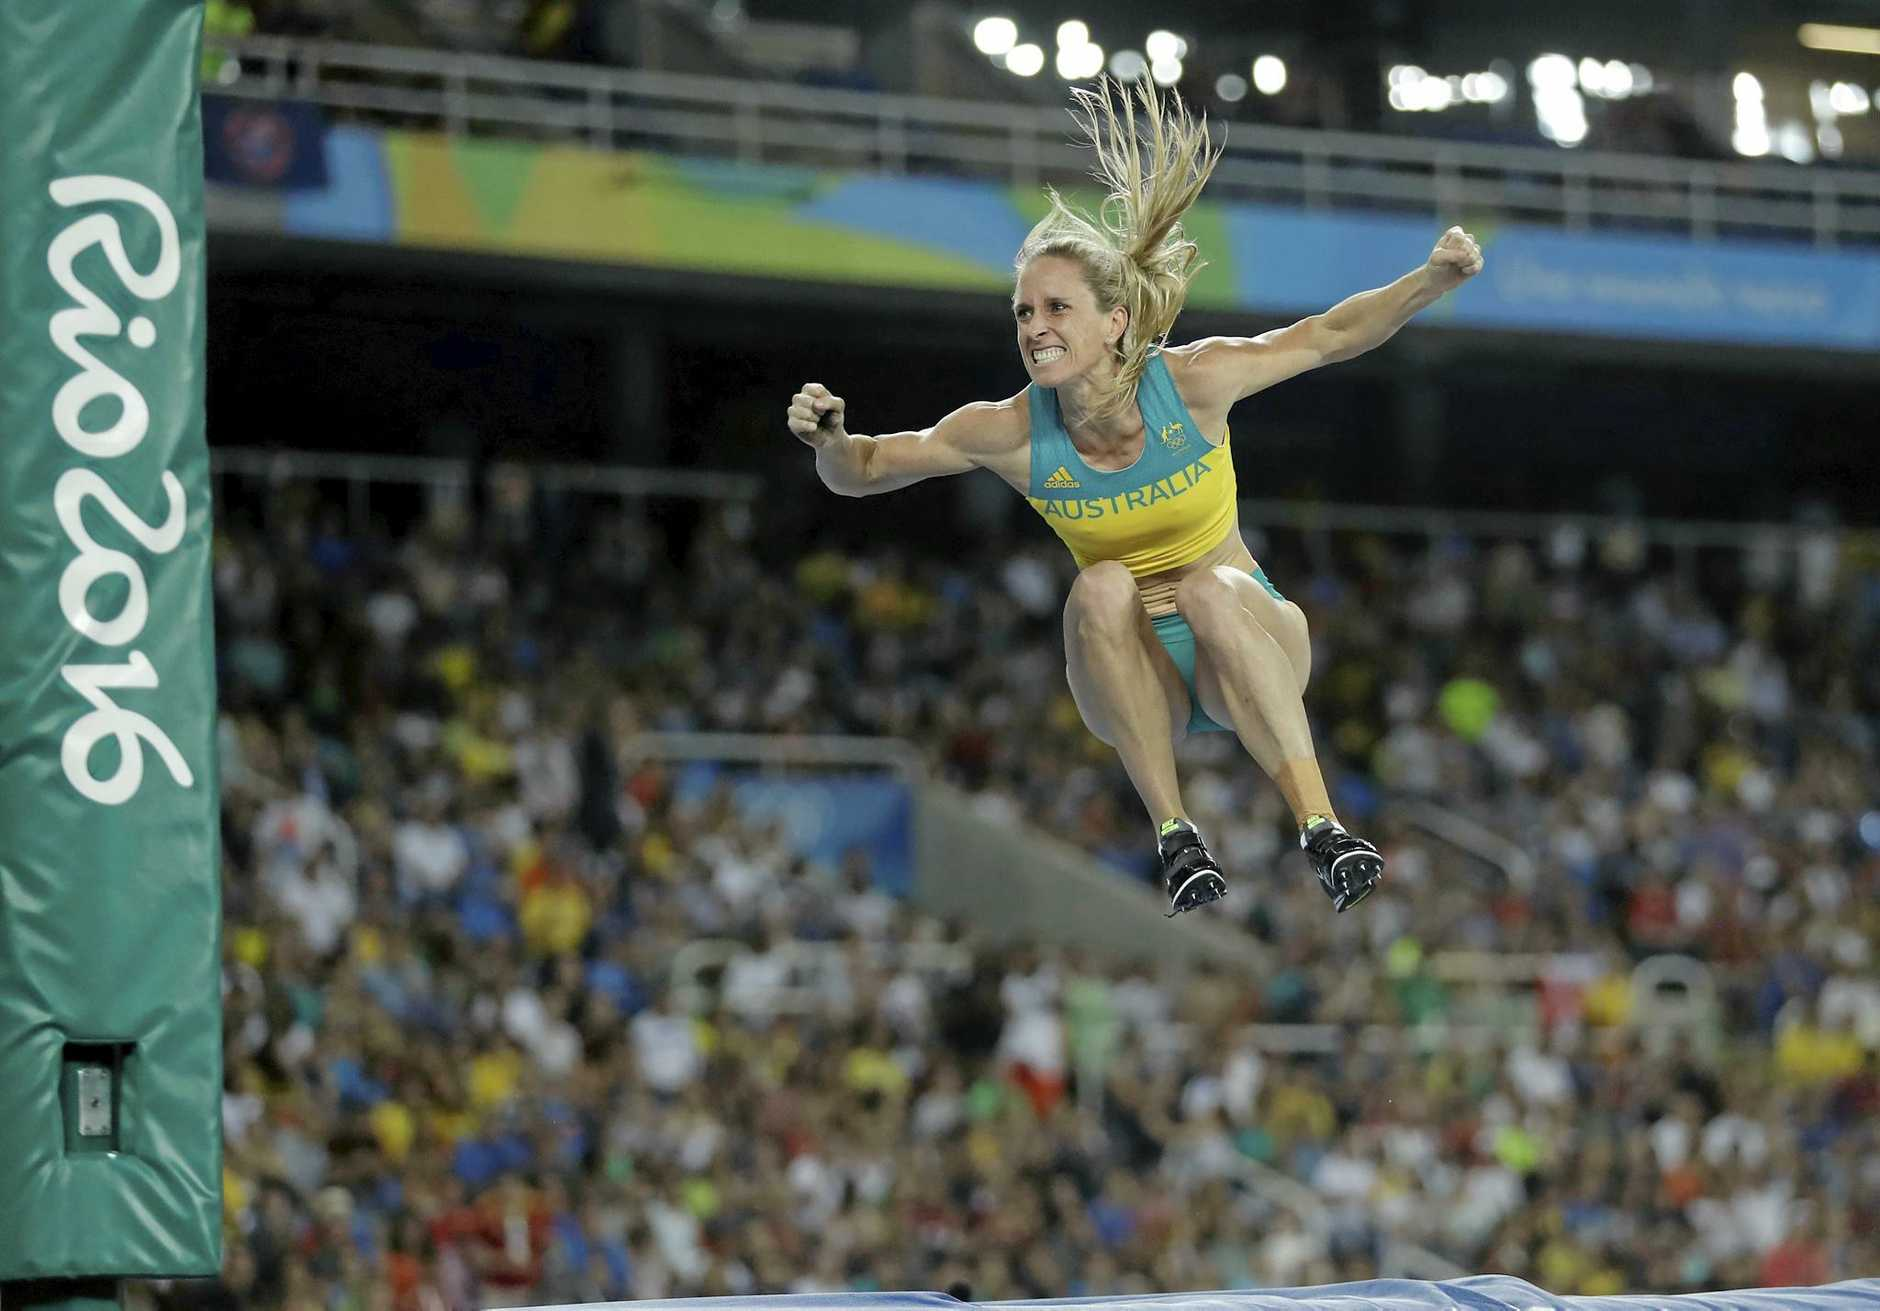 GREAT EFFORT: Alana Boyd competes in the women's pole vault final at Rio, where she finished fourth.